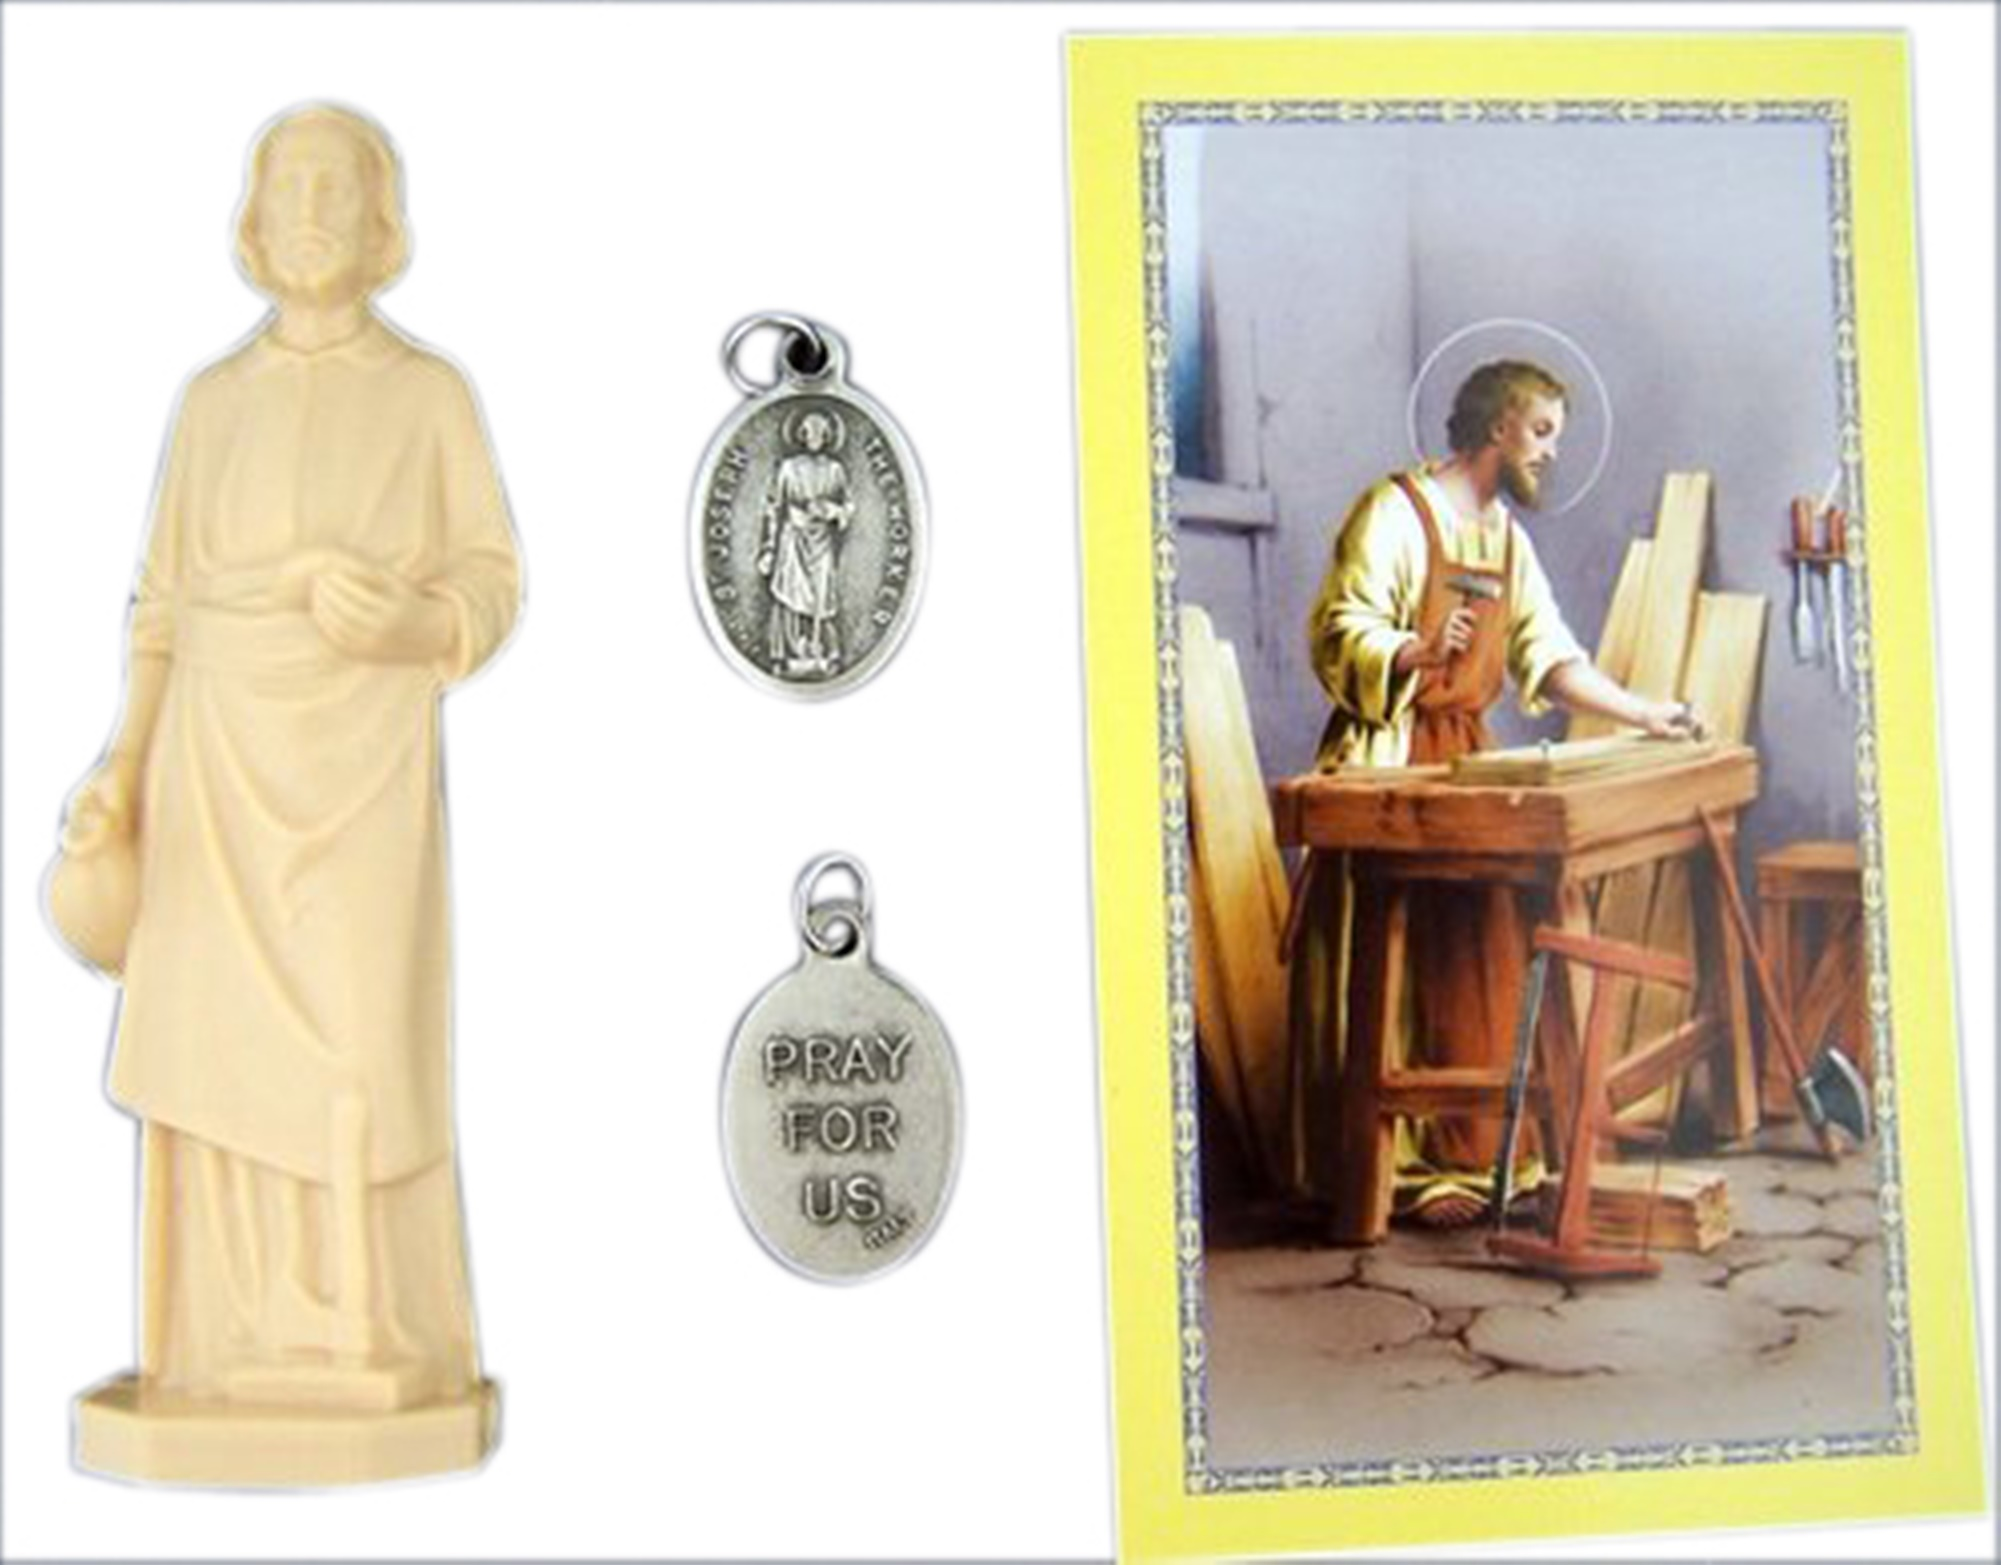 Home Seller Kit Saint Joseph Statue Figurine with Prayer Card Instructions and Saint Medal, 3 Inch by Needzo Inc